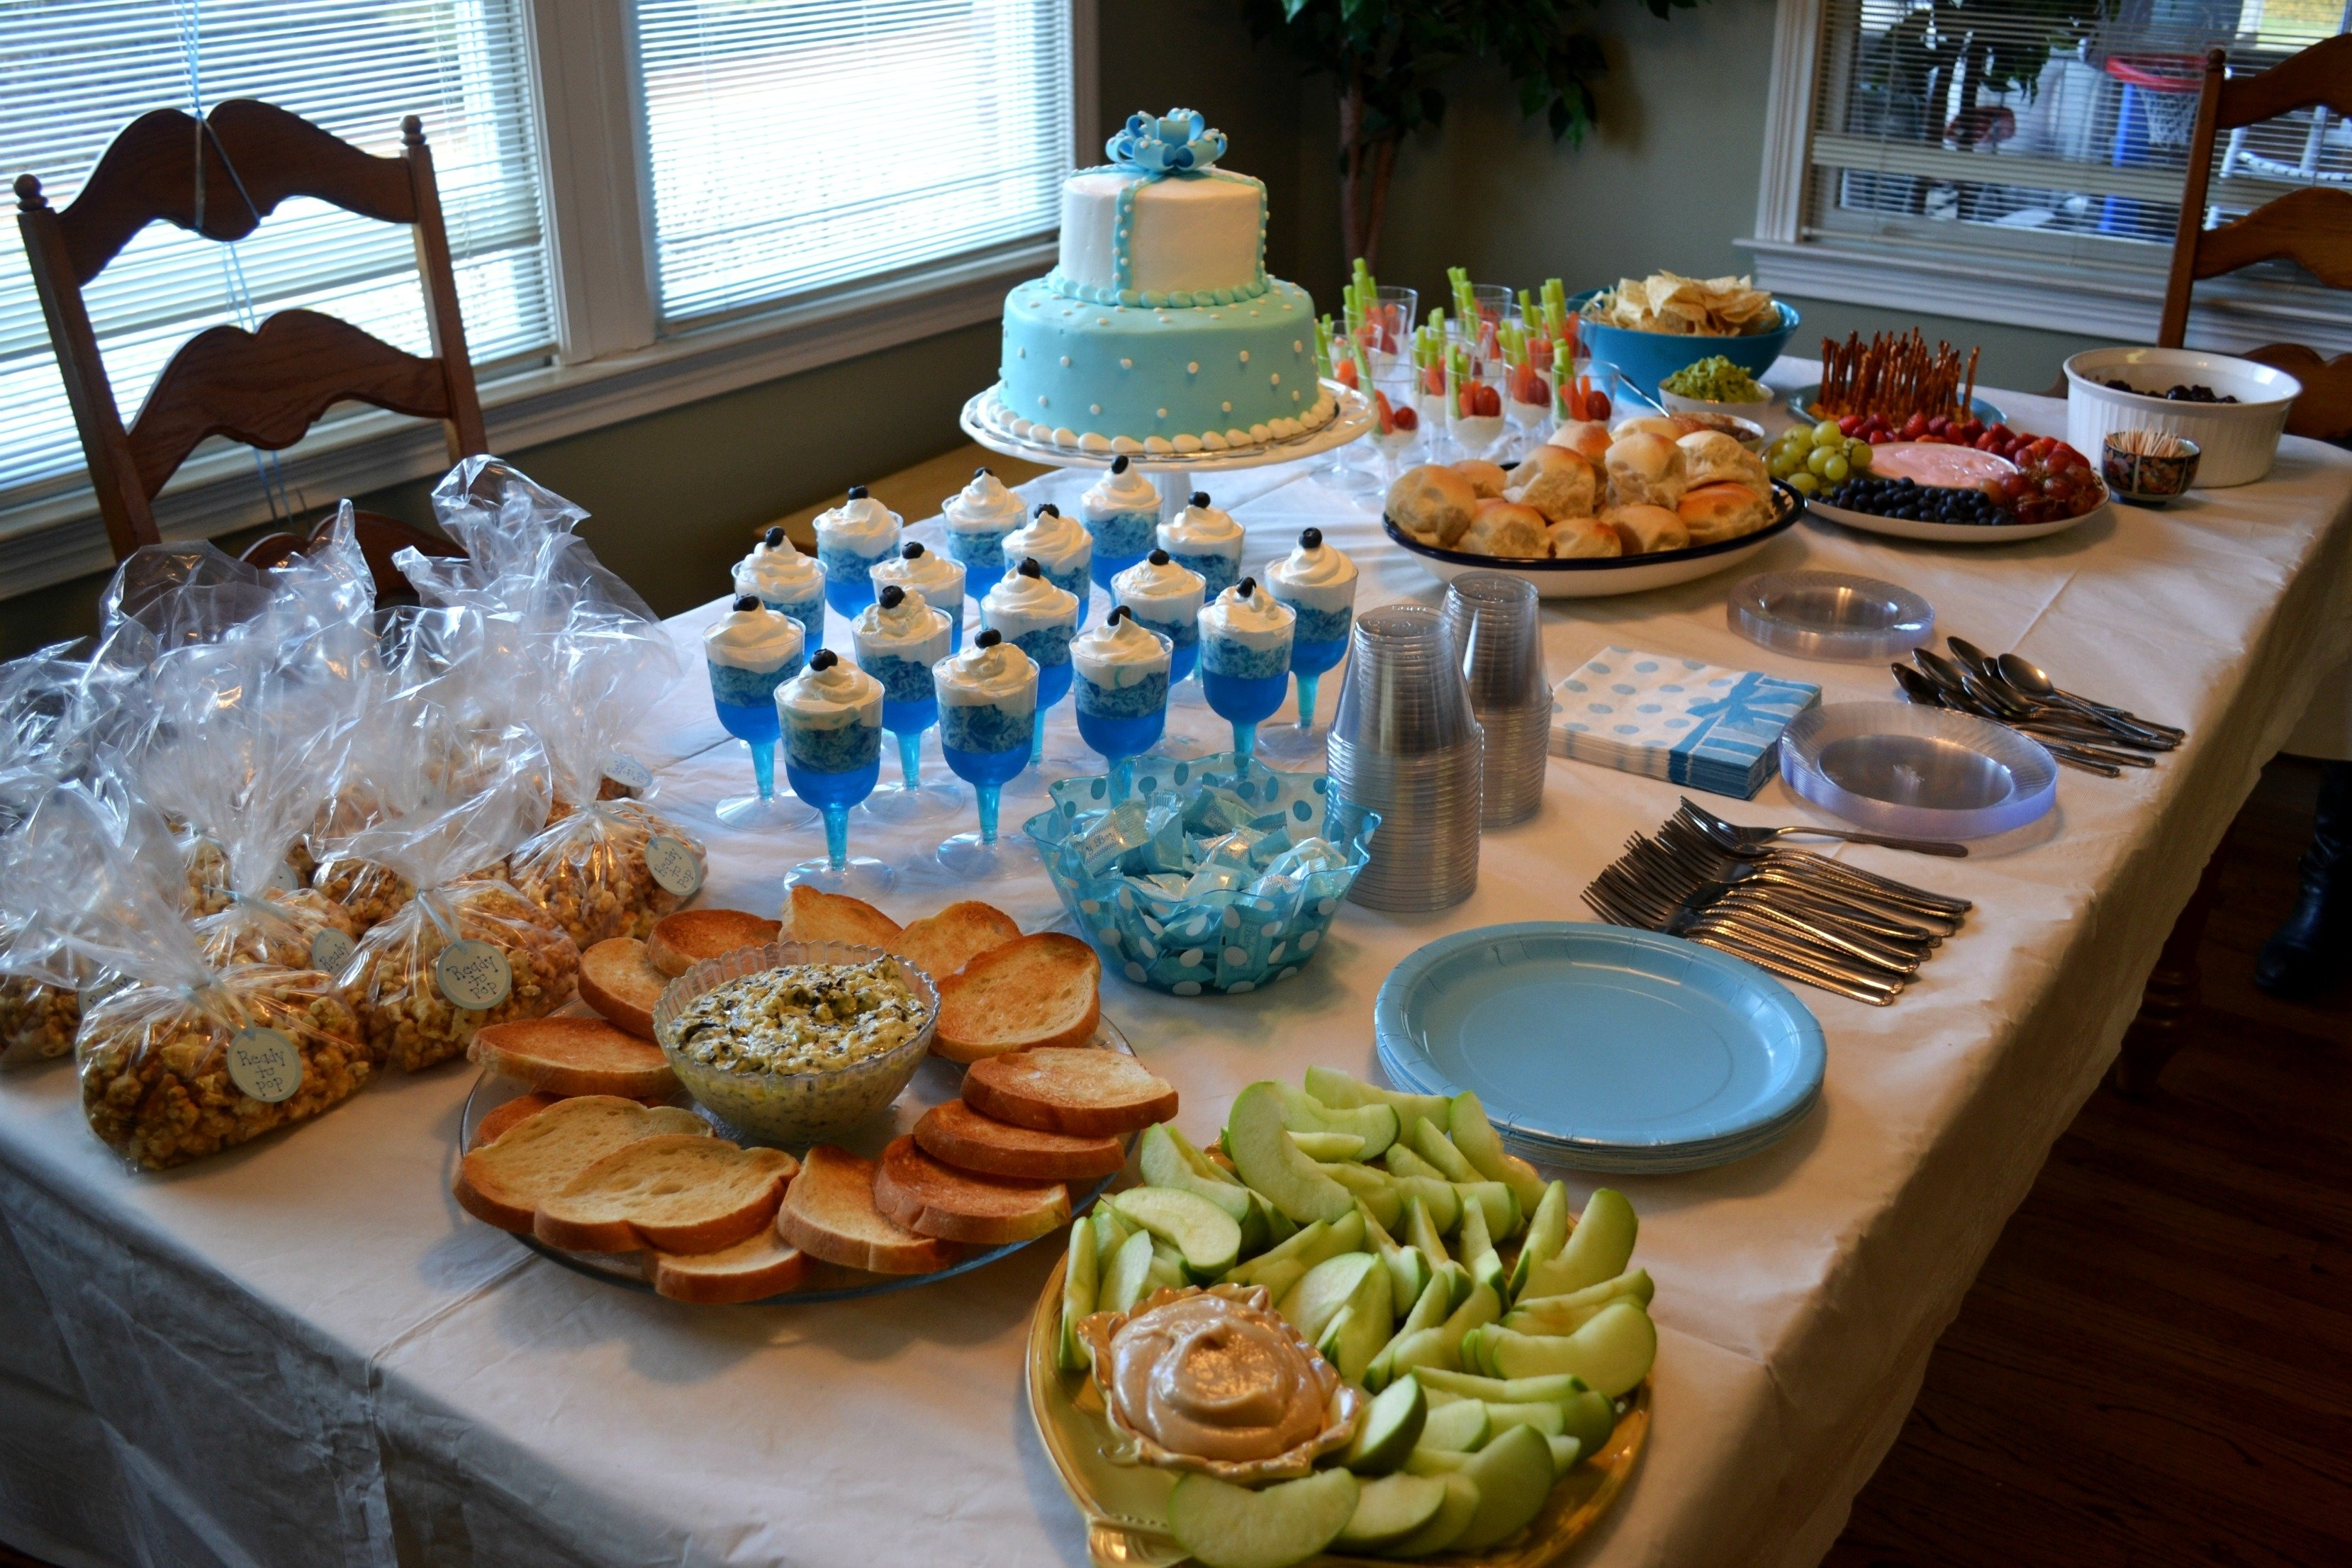 10 Stunning Baby Shower Food Ideas For Boy